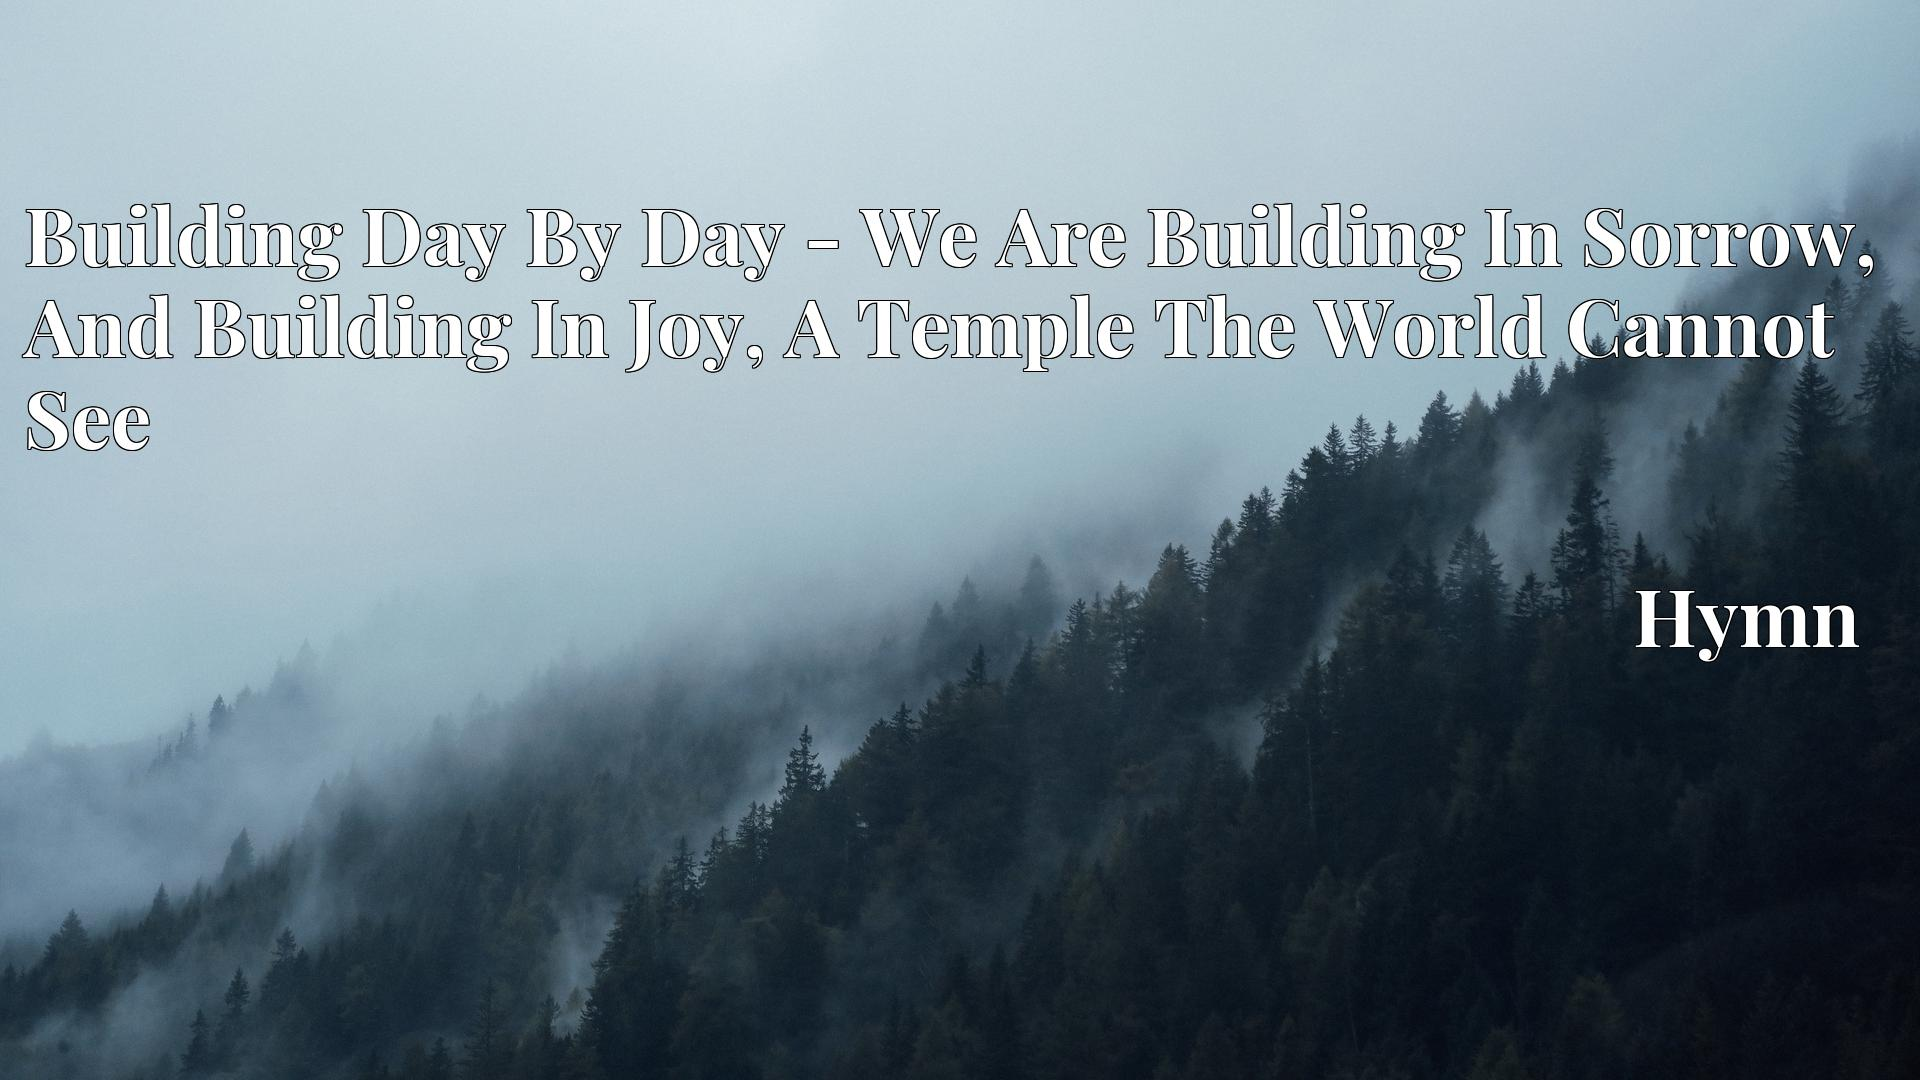 Building Day By Day - We Are Building In Sorrow, And Building In Joy, A Temple The World Cannot See - Hymn